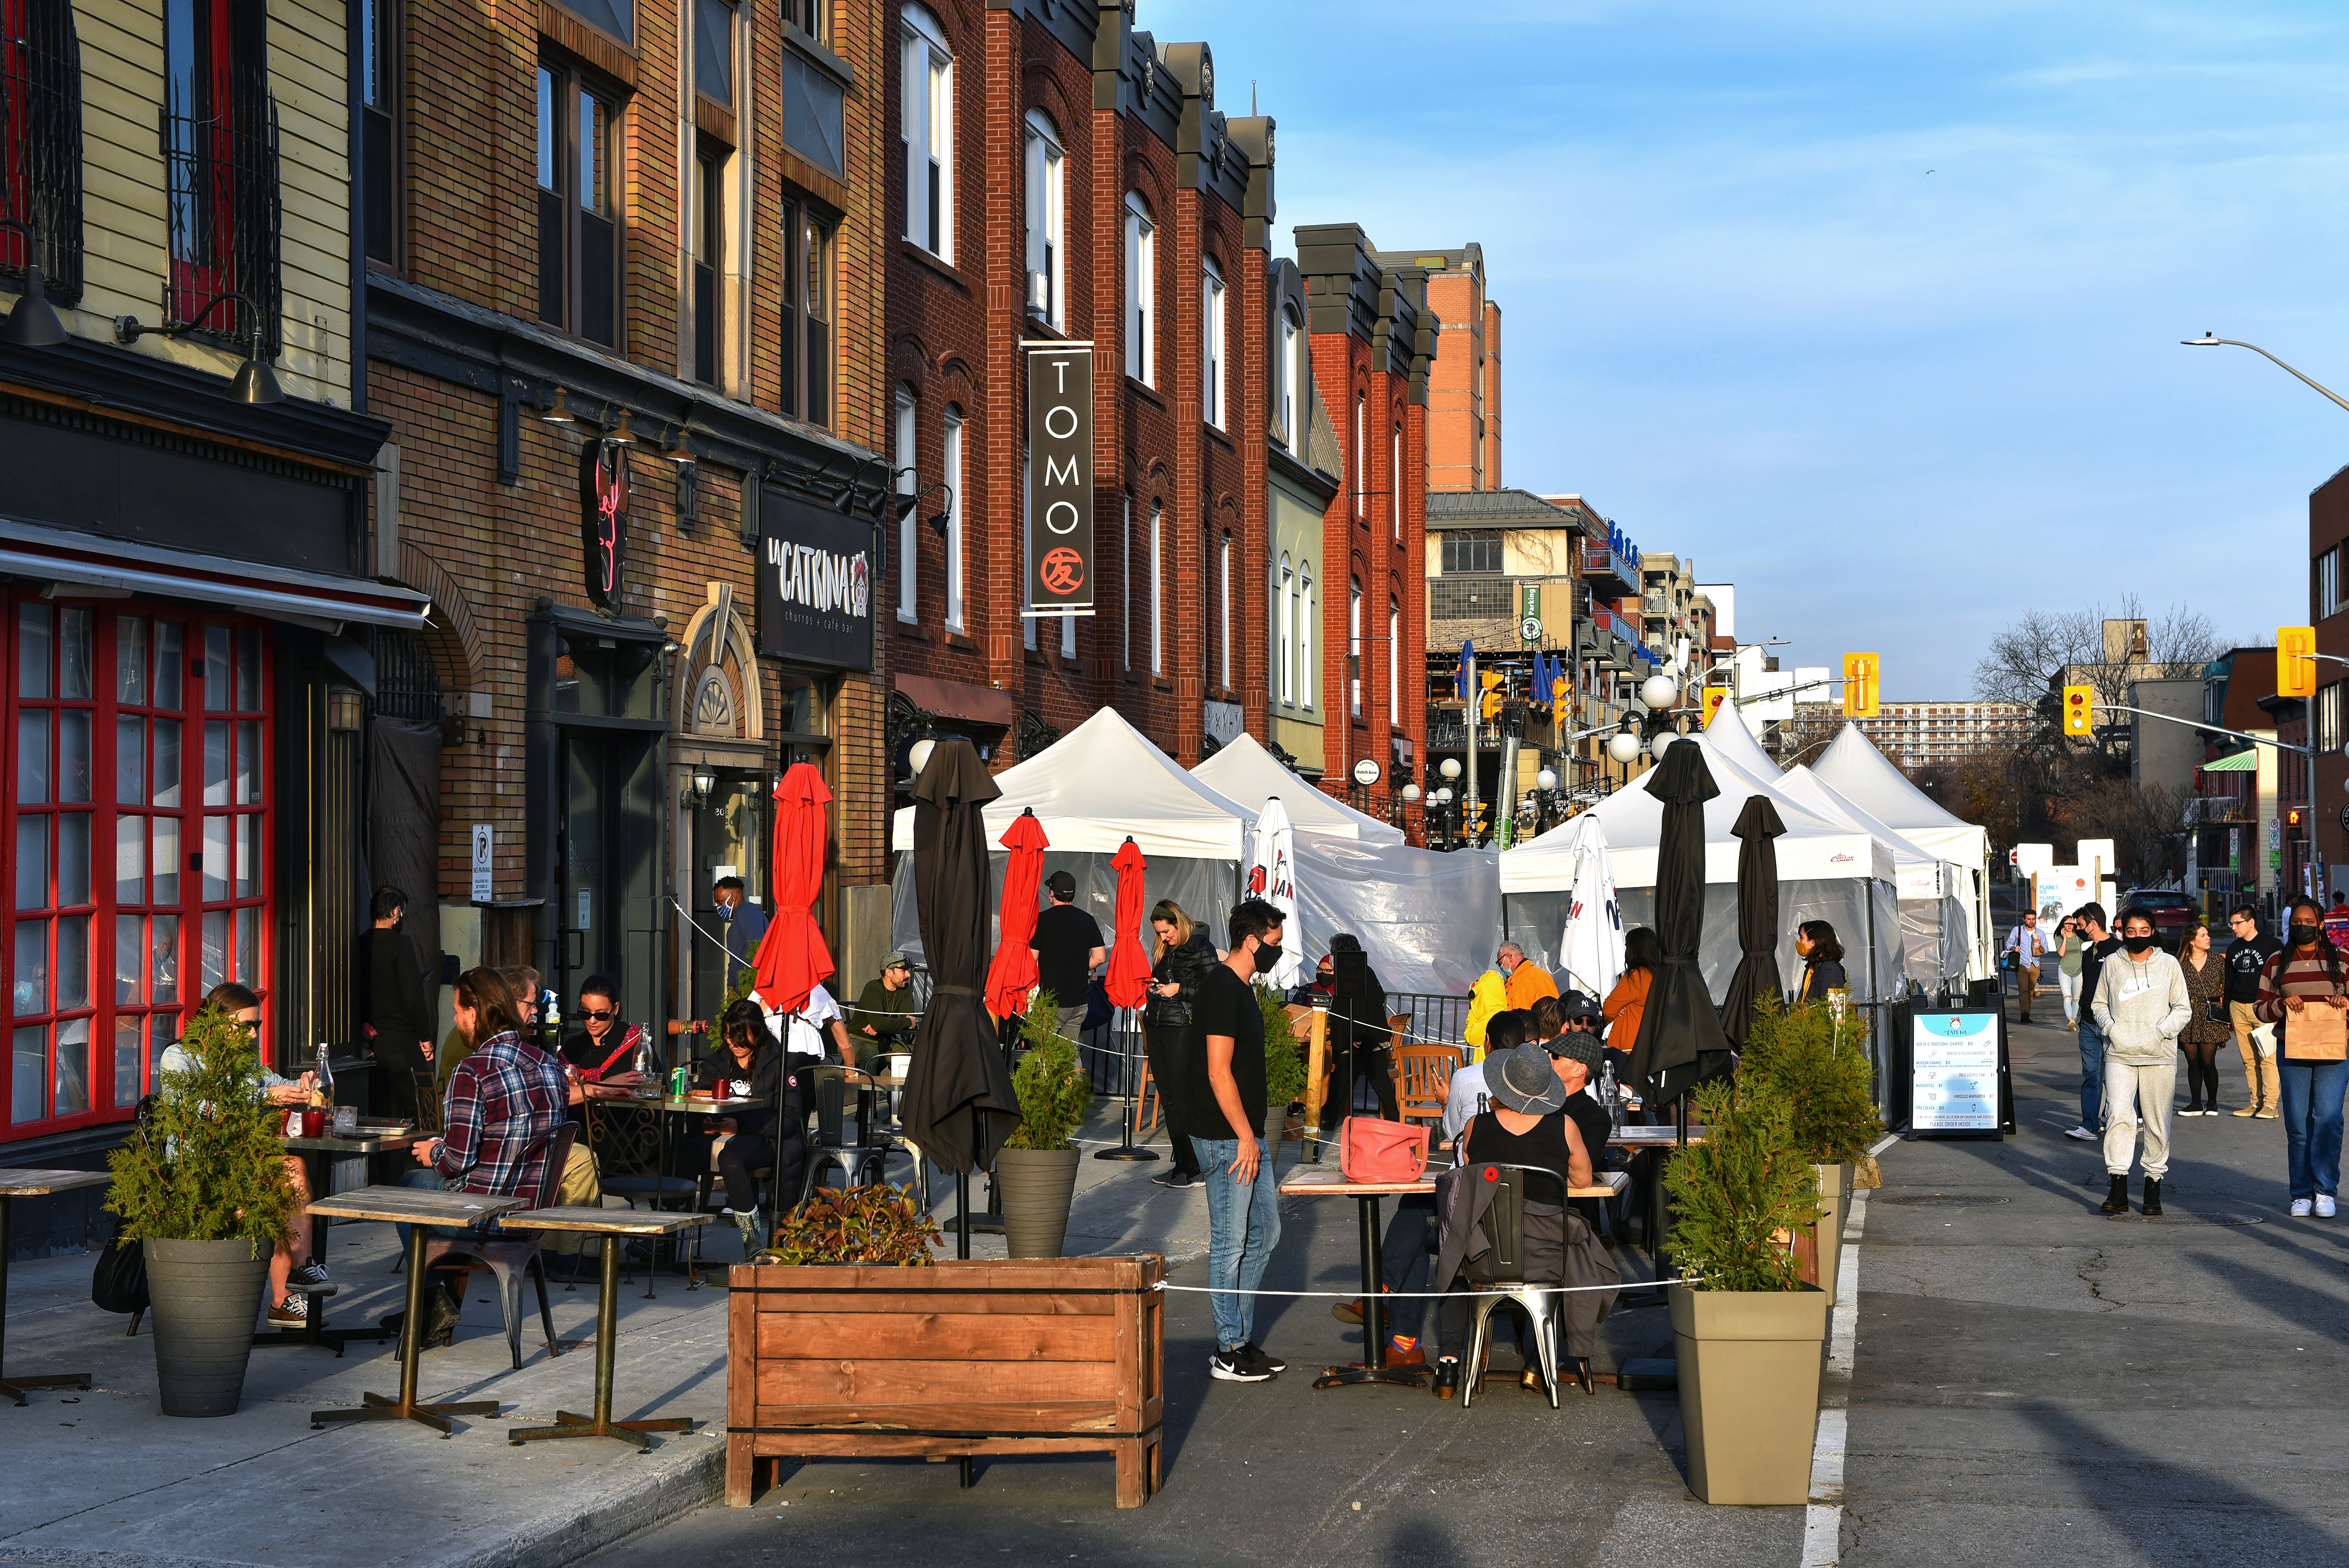 Bars and restaurants on Ottawa's Clarence St. with tents and patios stretching into the street for safe dining.